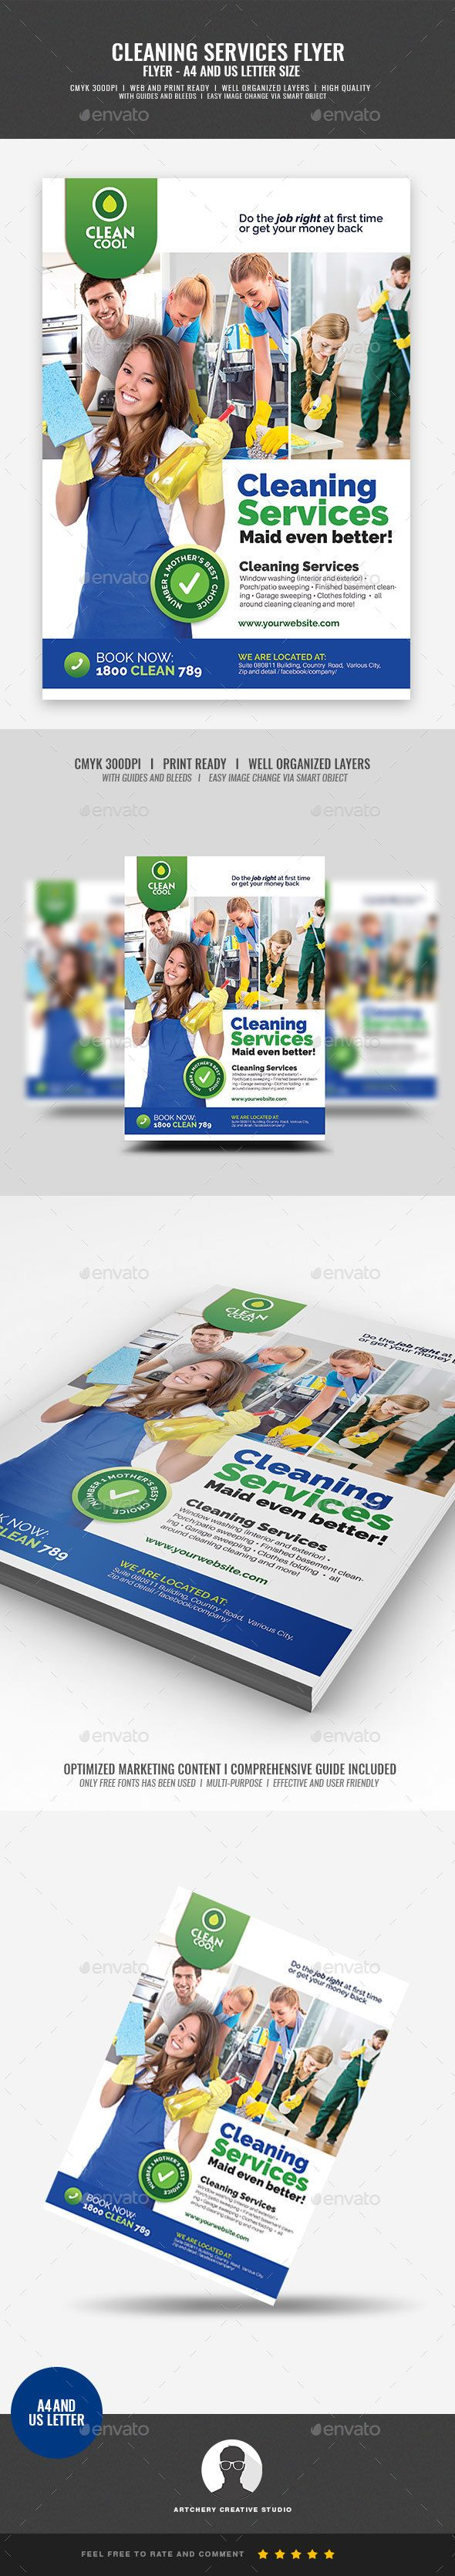 Household Cleaning Service Company Flyer #clean #advertising  • Download here → https://graphicriver.net/item/household-cleaning-service-company-flyer/21263826?ref=pxcr